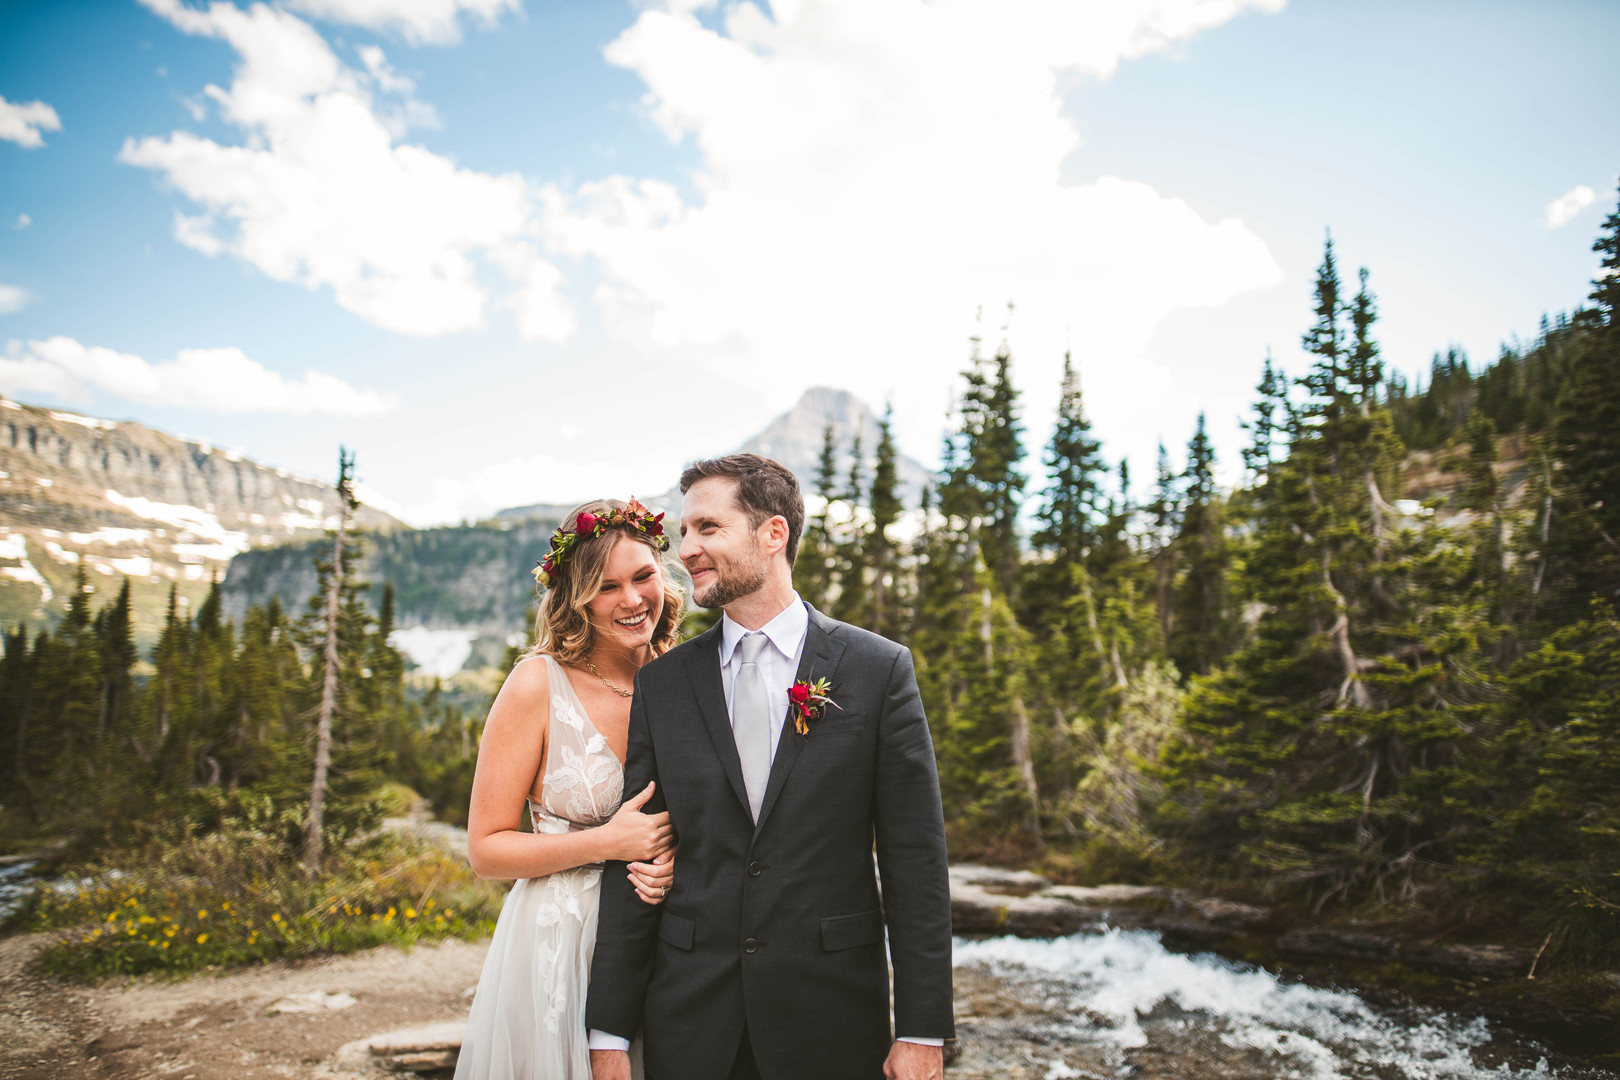 Brenna and Daniel's elopement in Glacier National Park